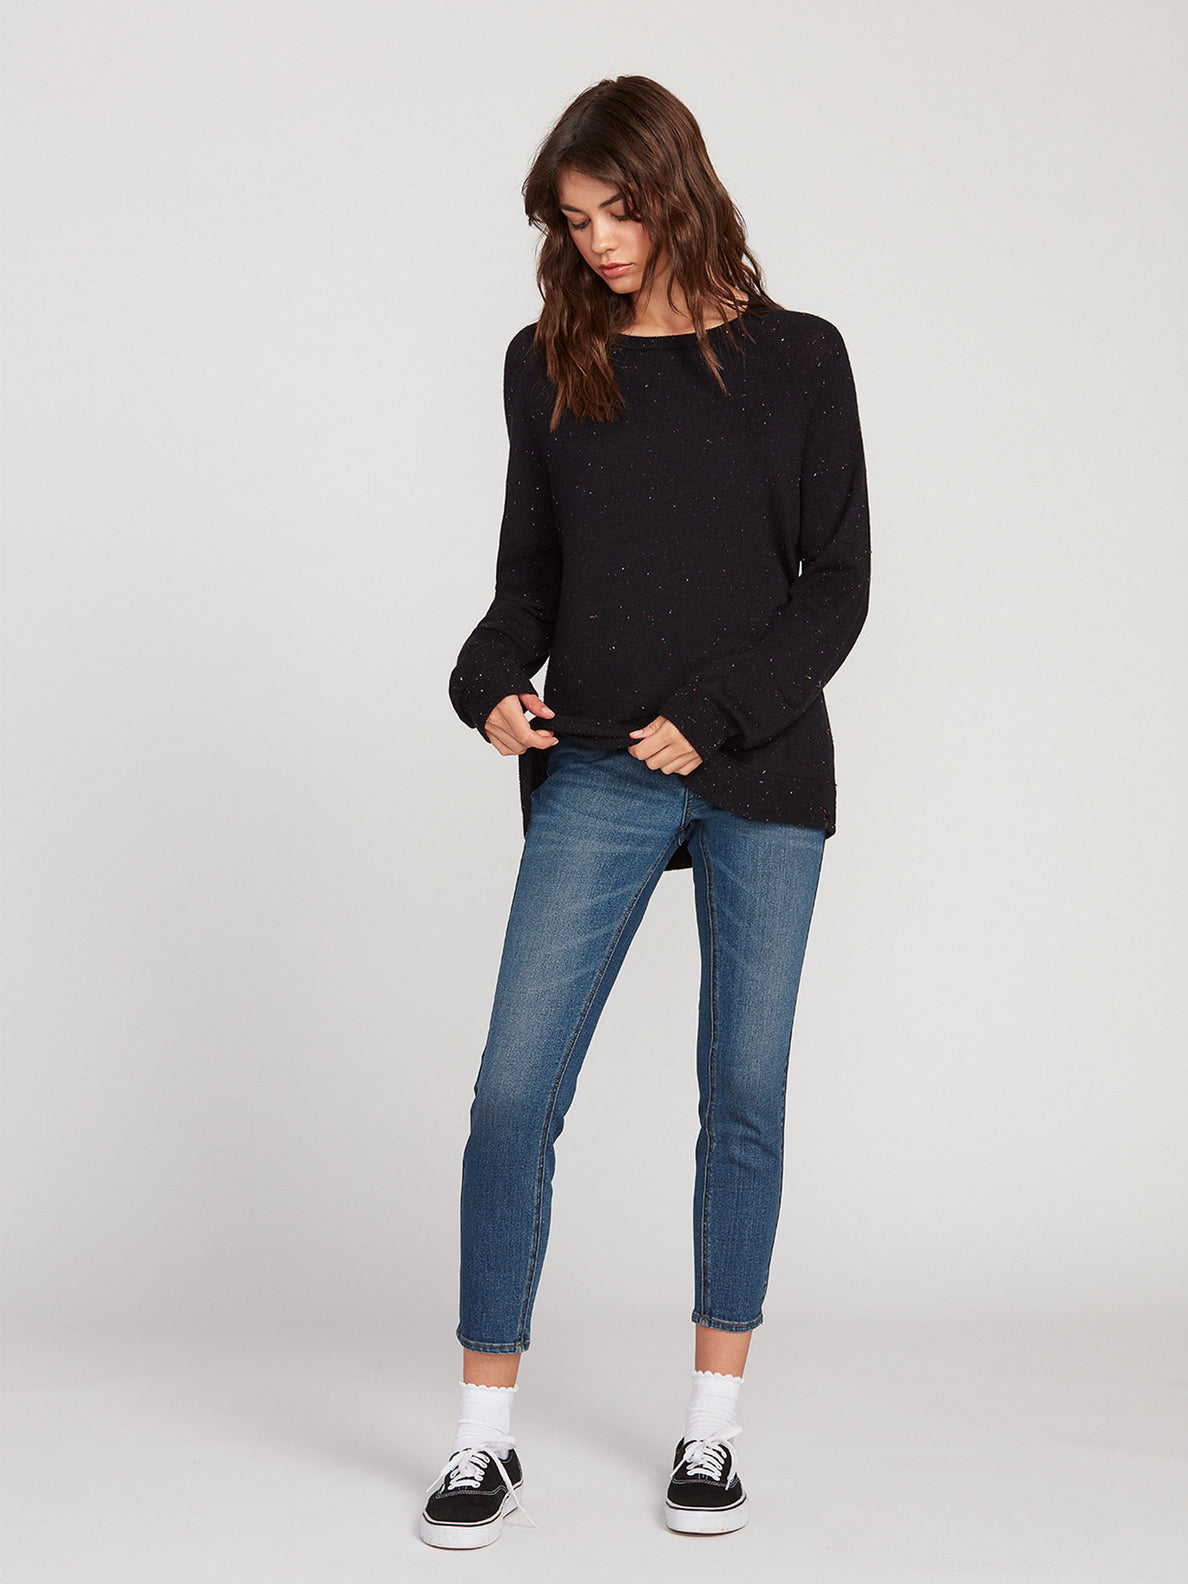 Over N Over Sweater - Black Combo (B0741908_BLC) [1]